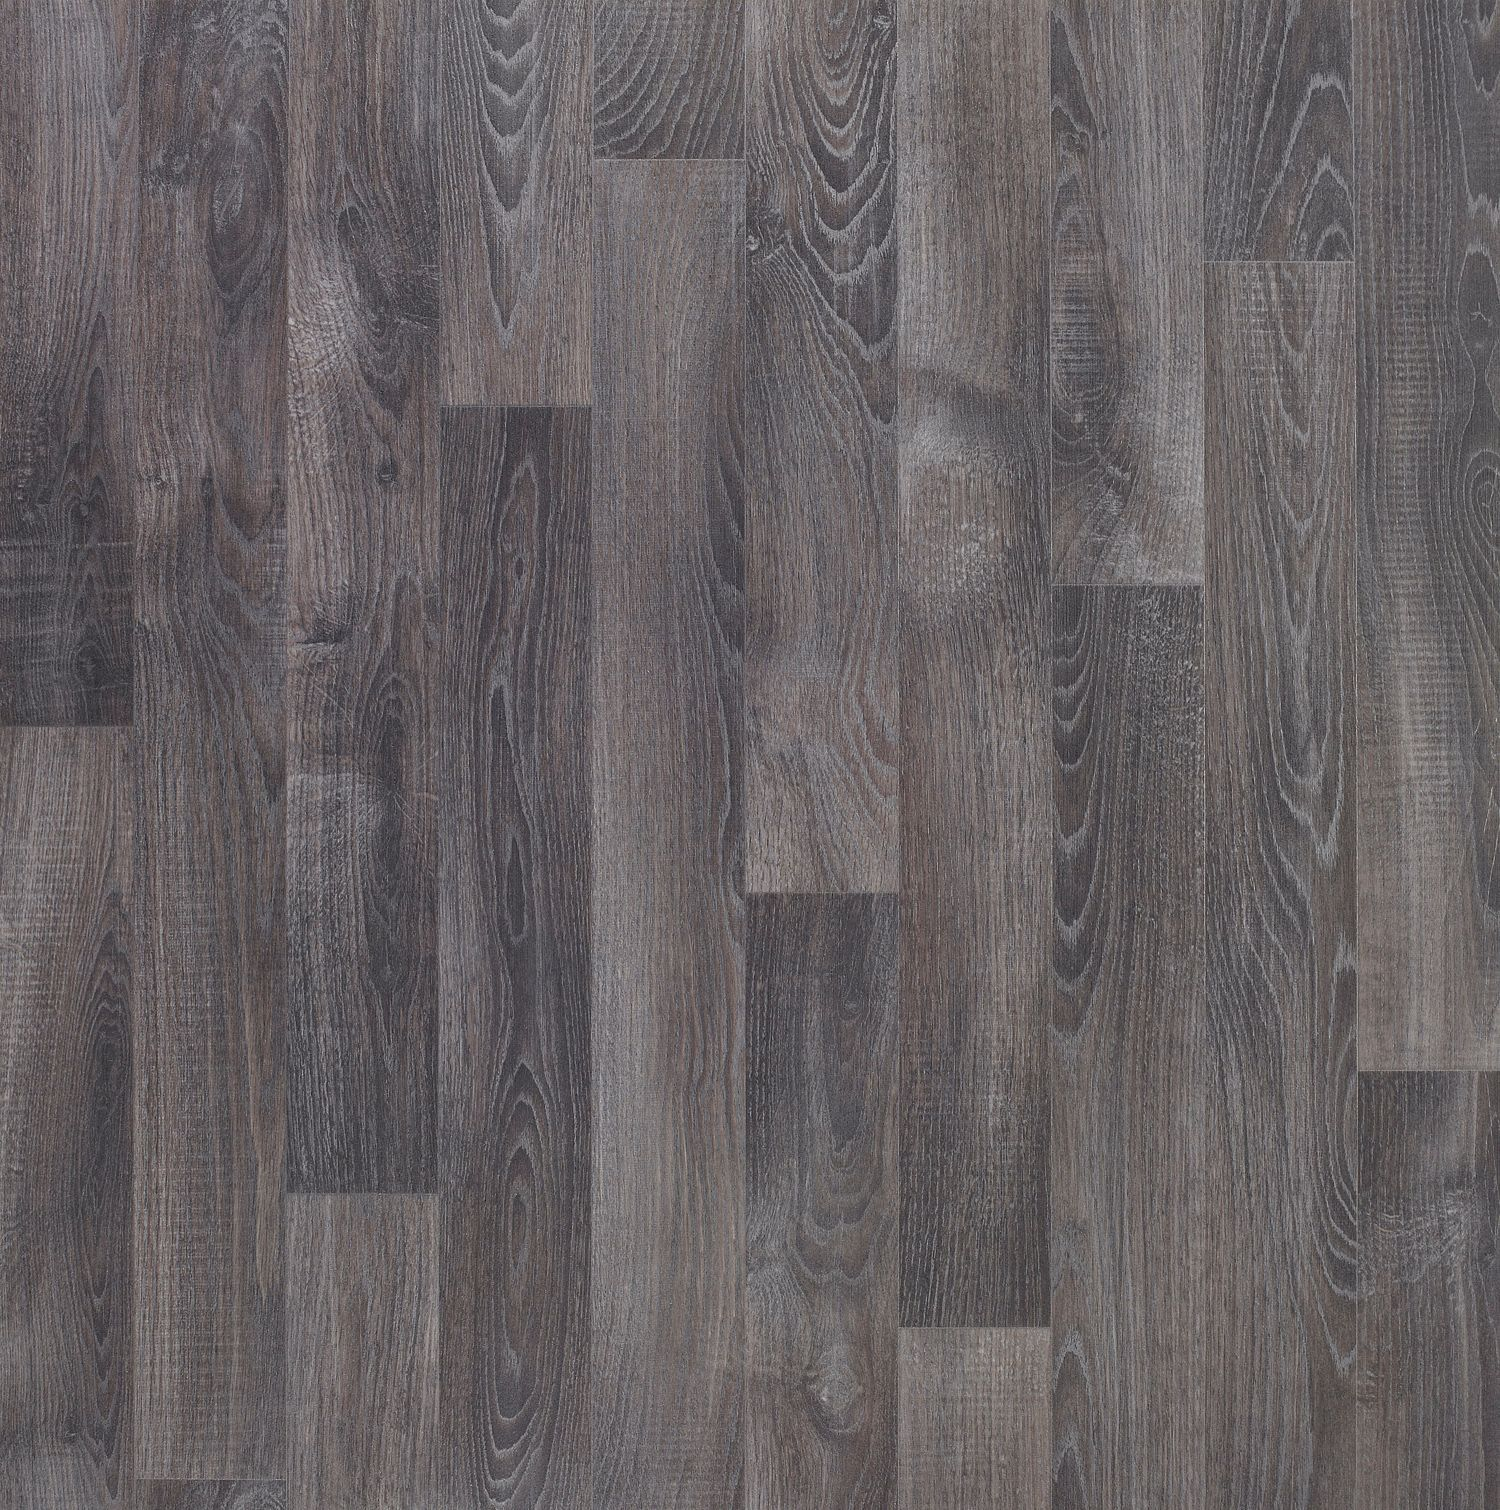 Dark grey oak effect vinyl flooring 4 m departments for Grey linoleum flooring